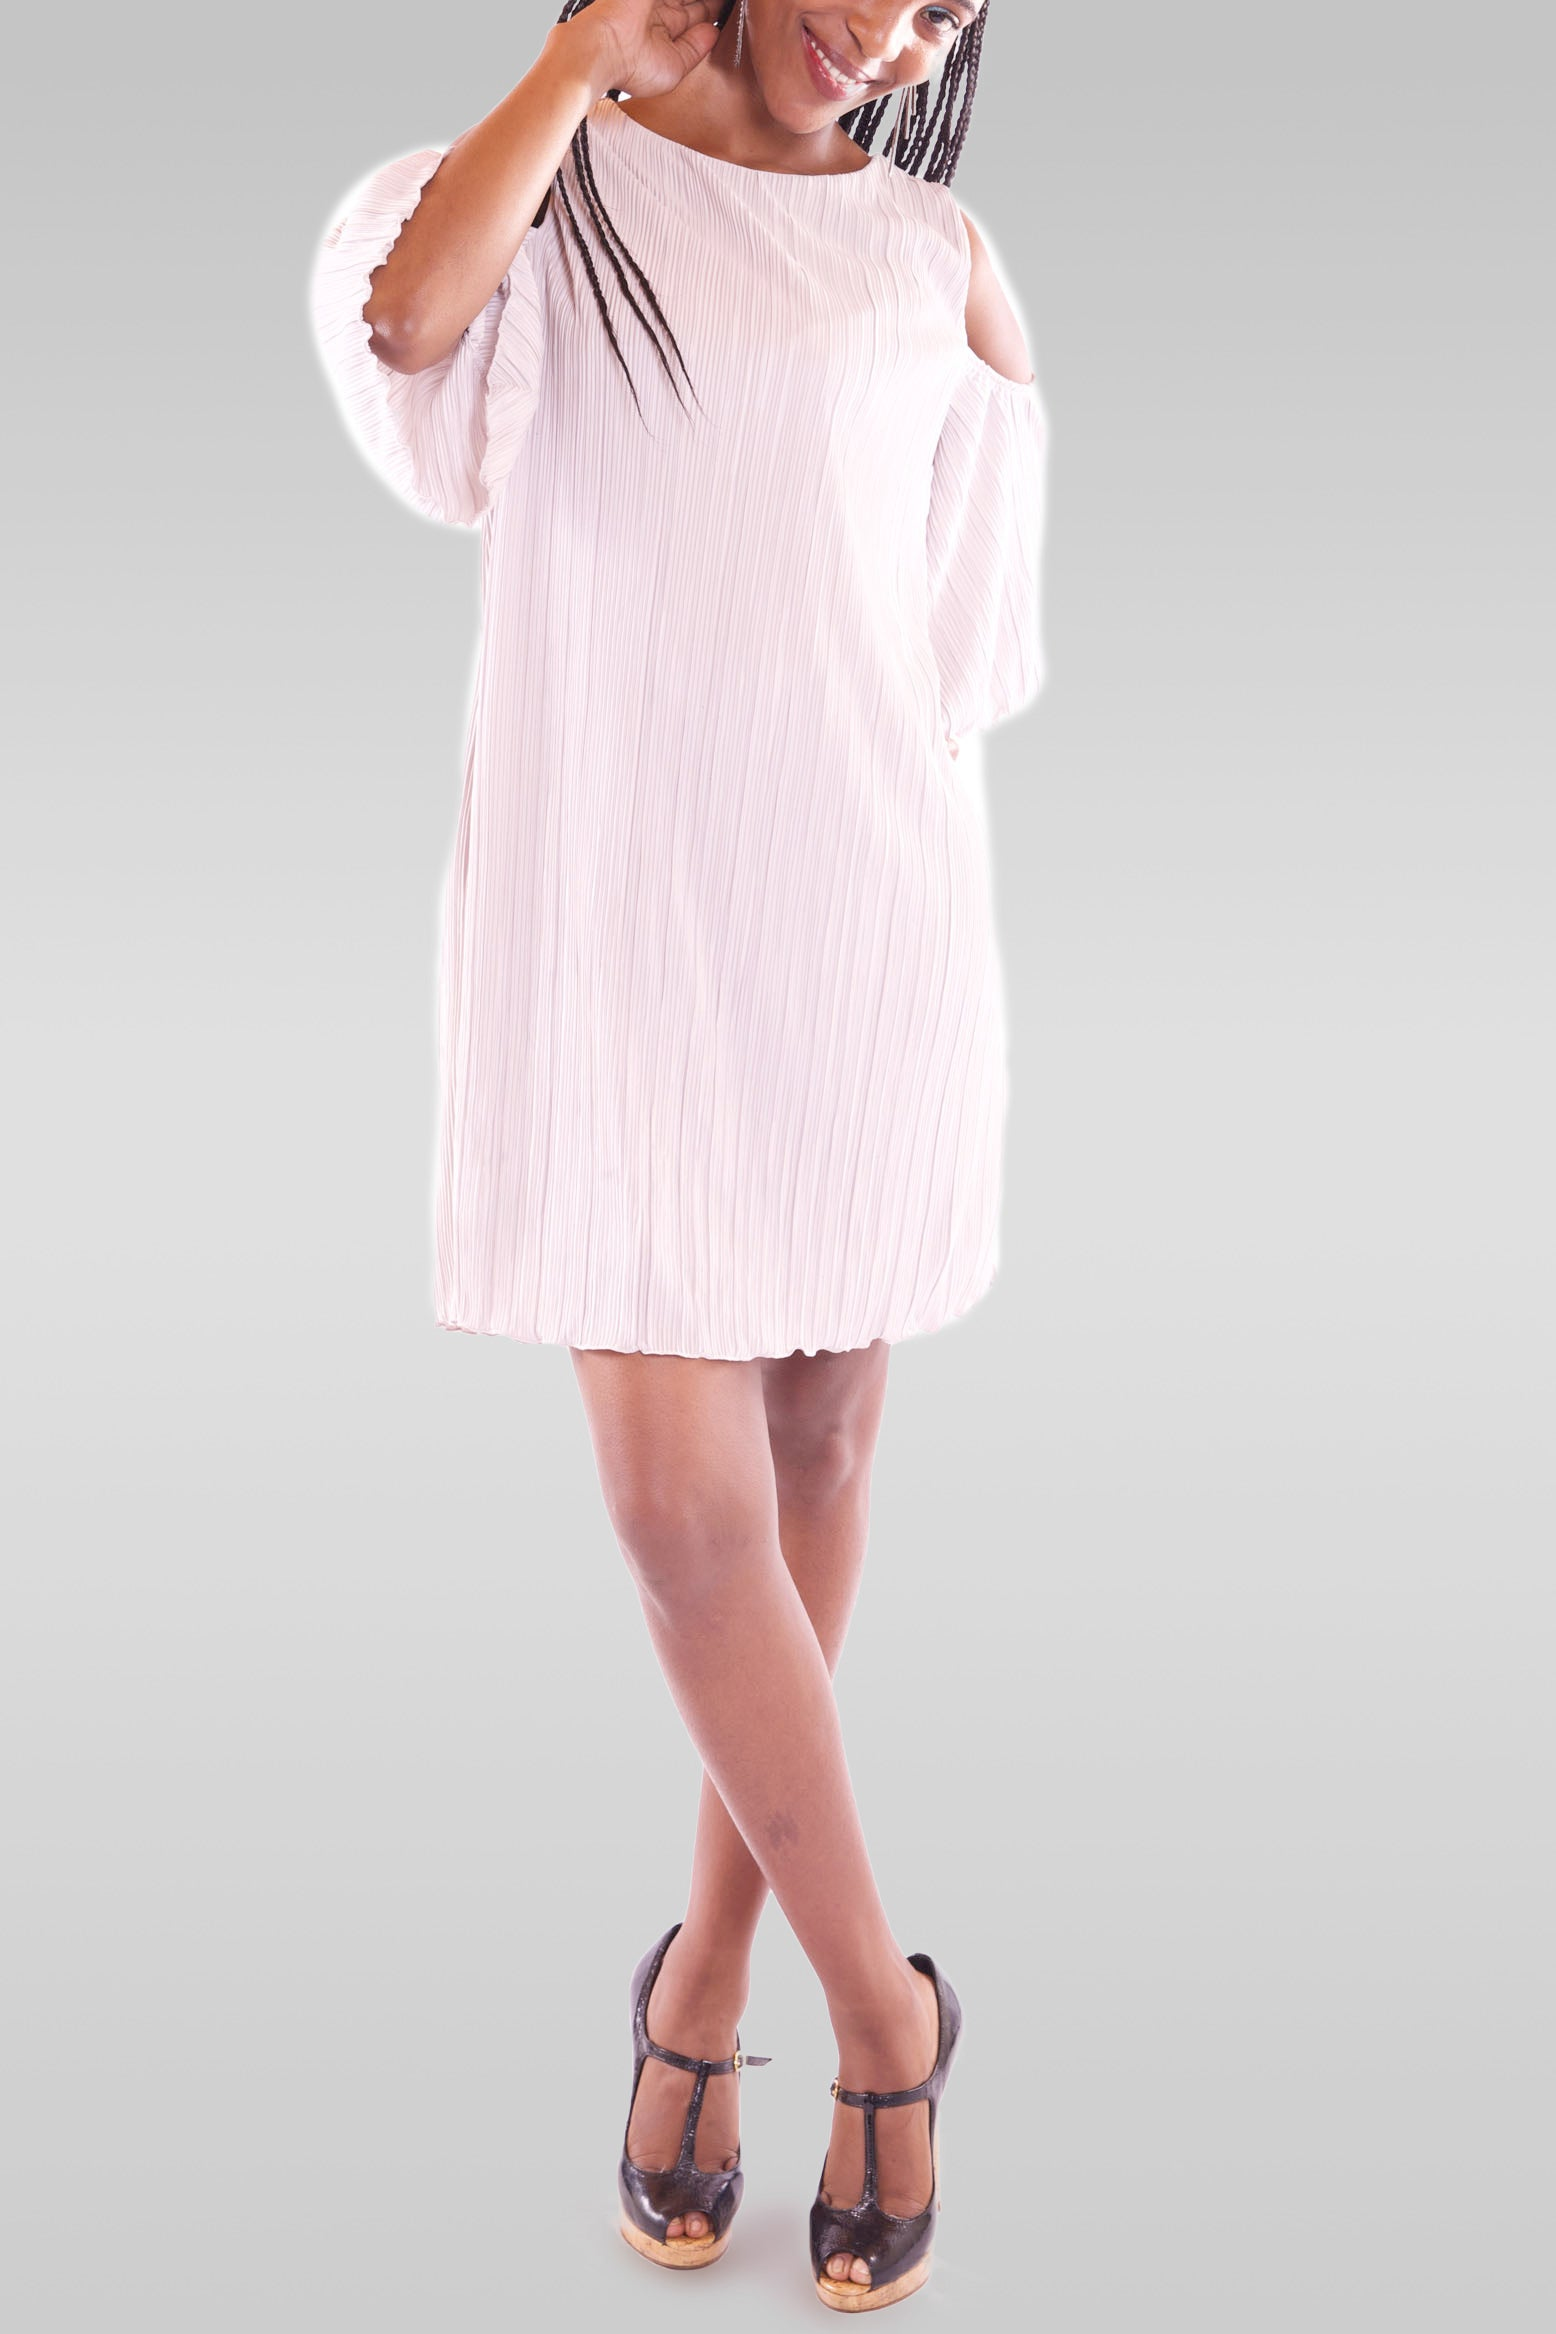 Women's Mini White Dress - Hillmarten